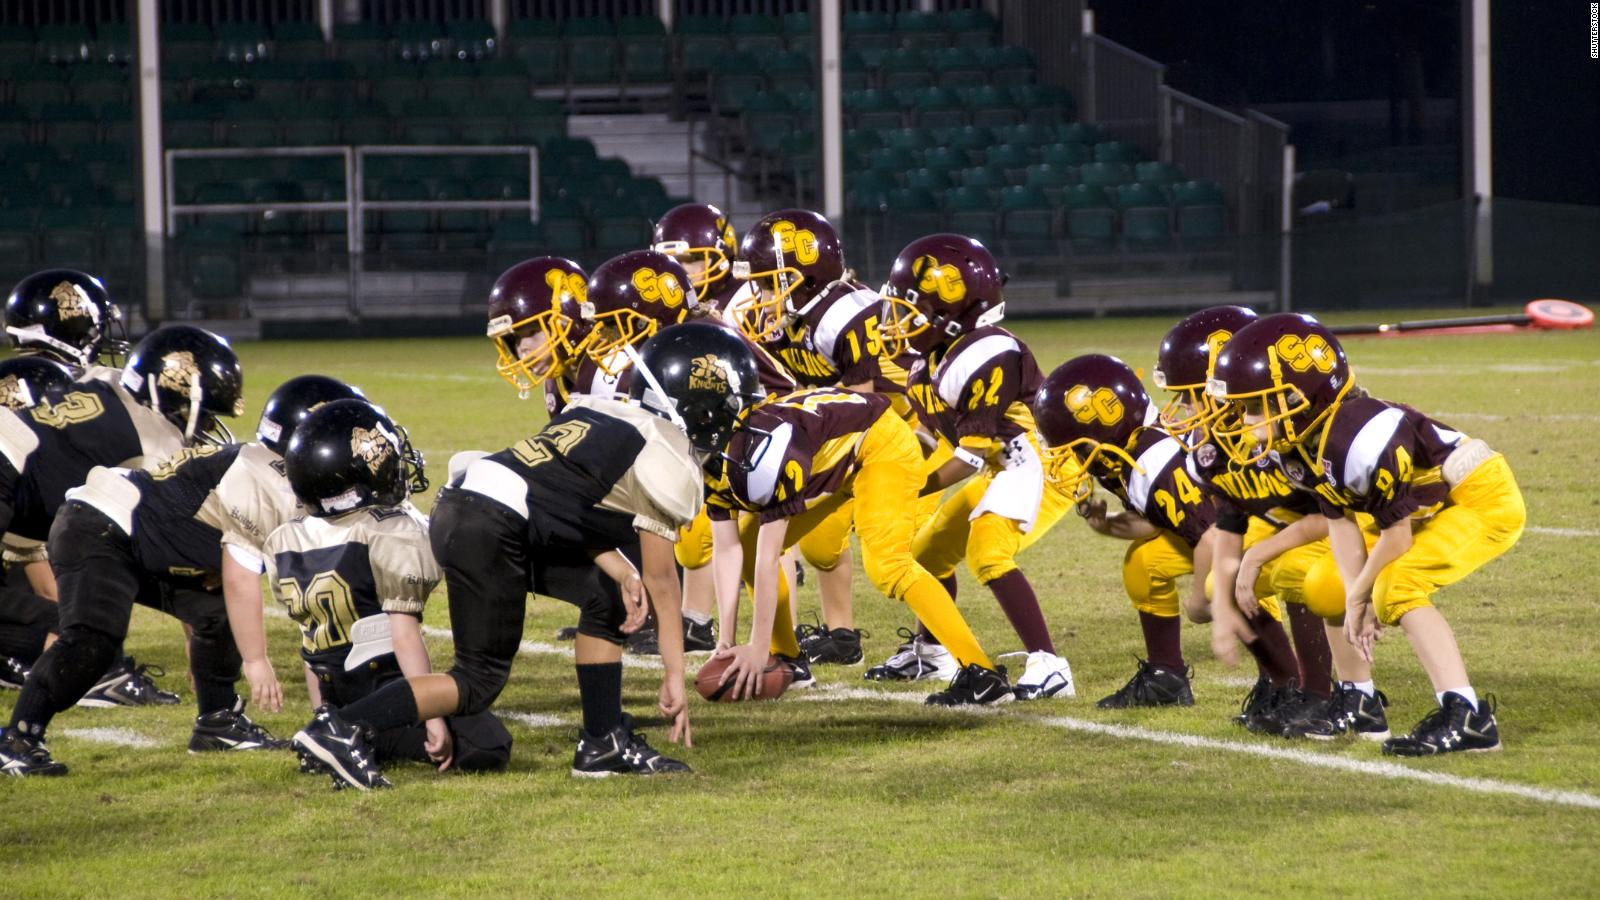 Improving safety on the football field